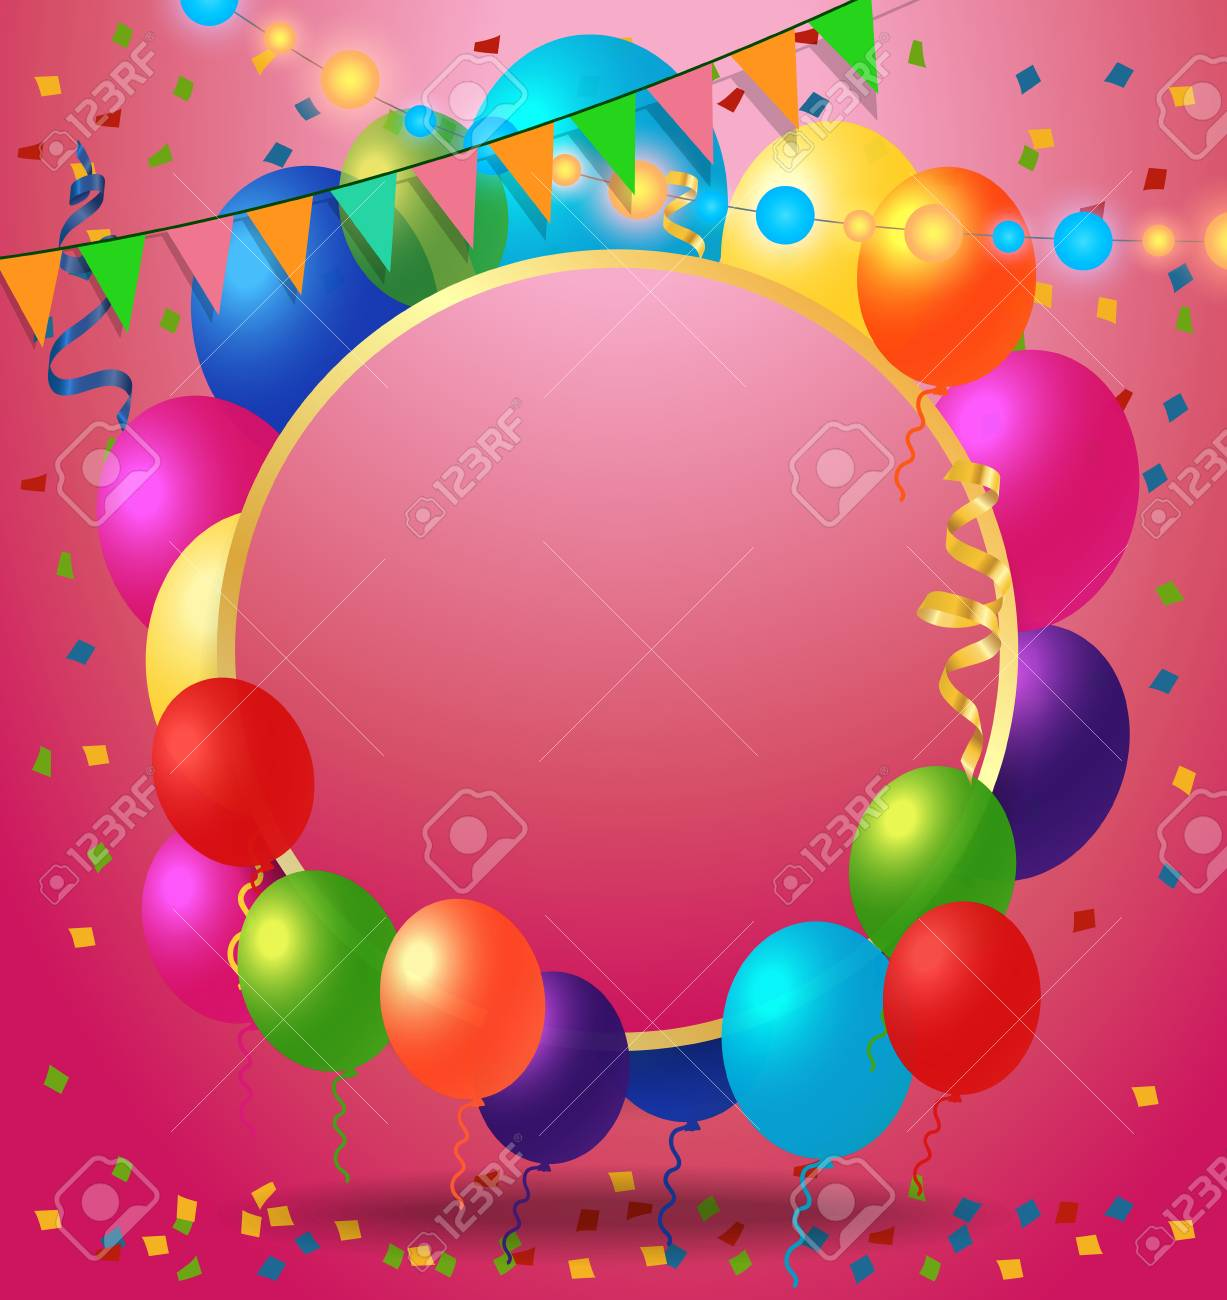 Blank Greeting Card With Round Frame Balloons And Garland For